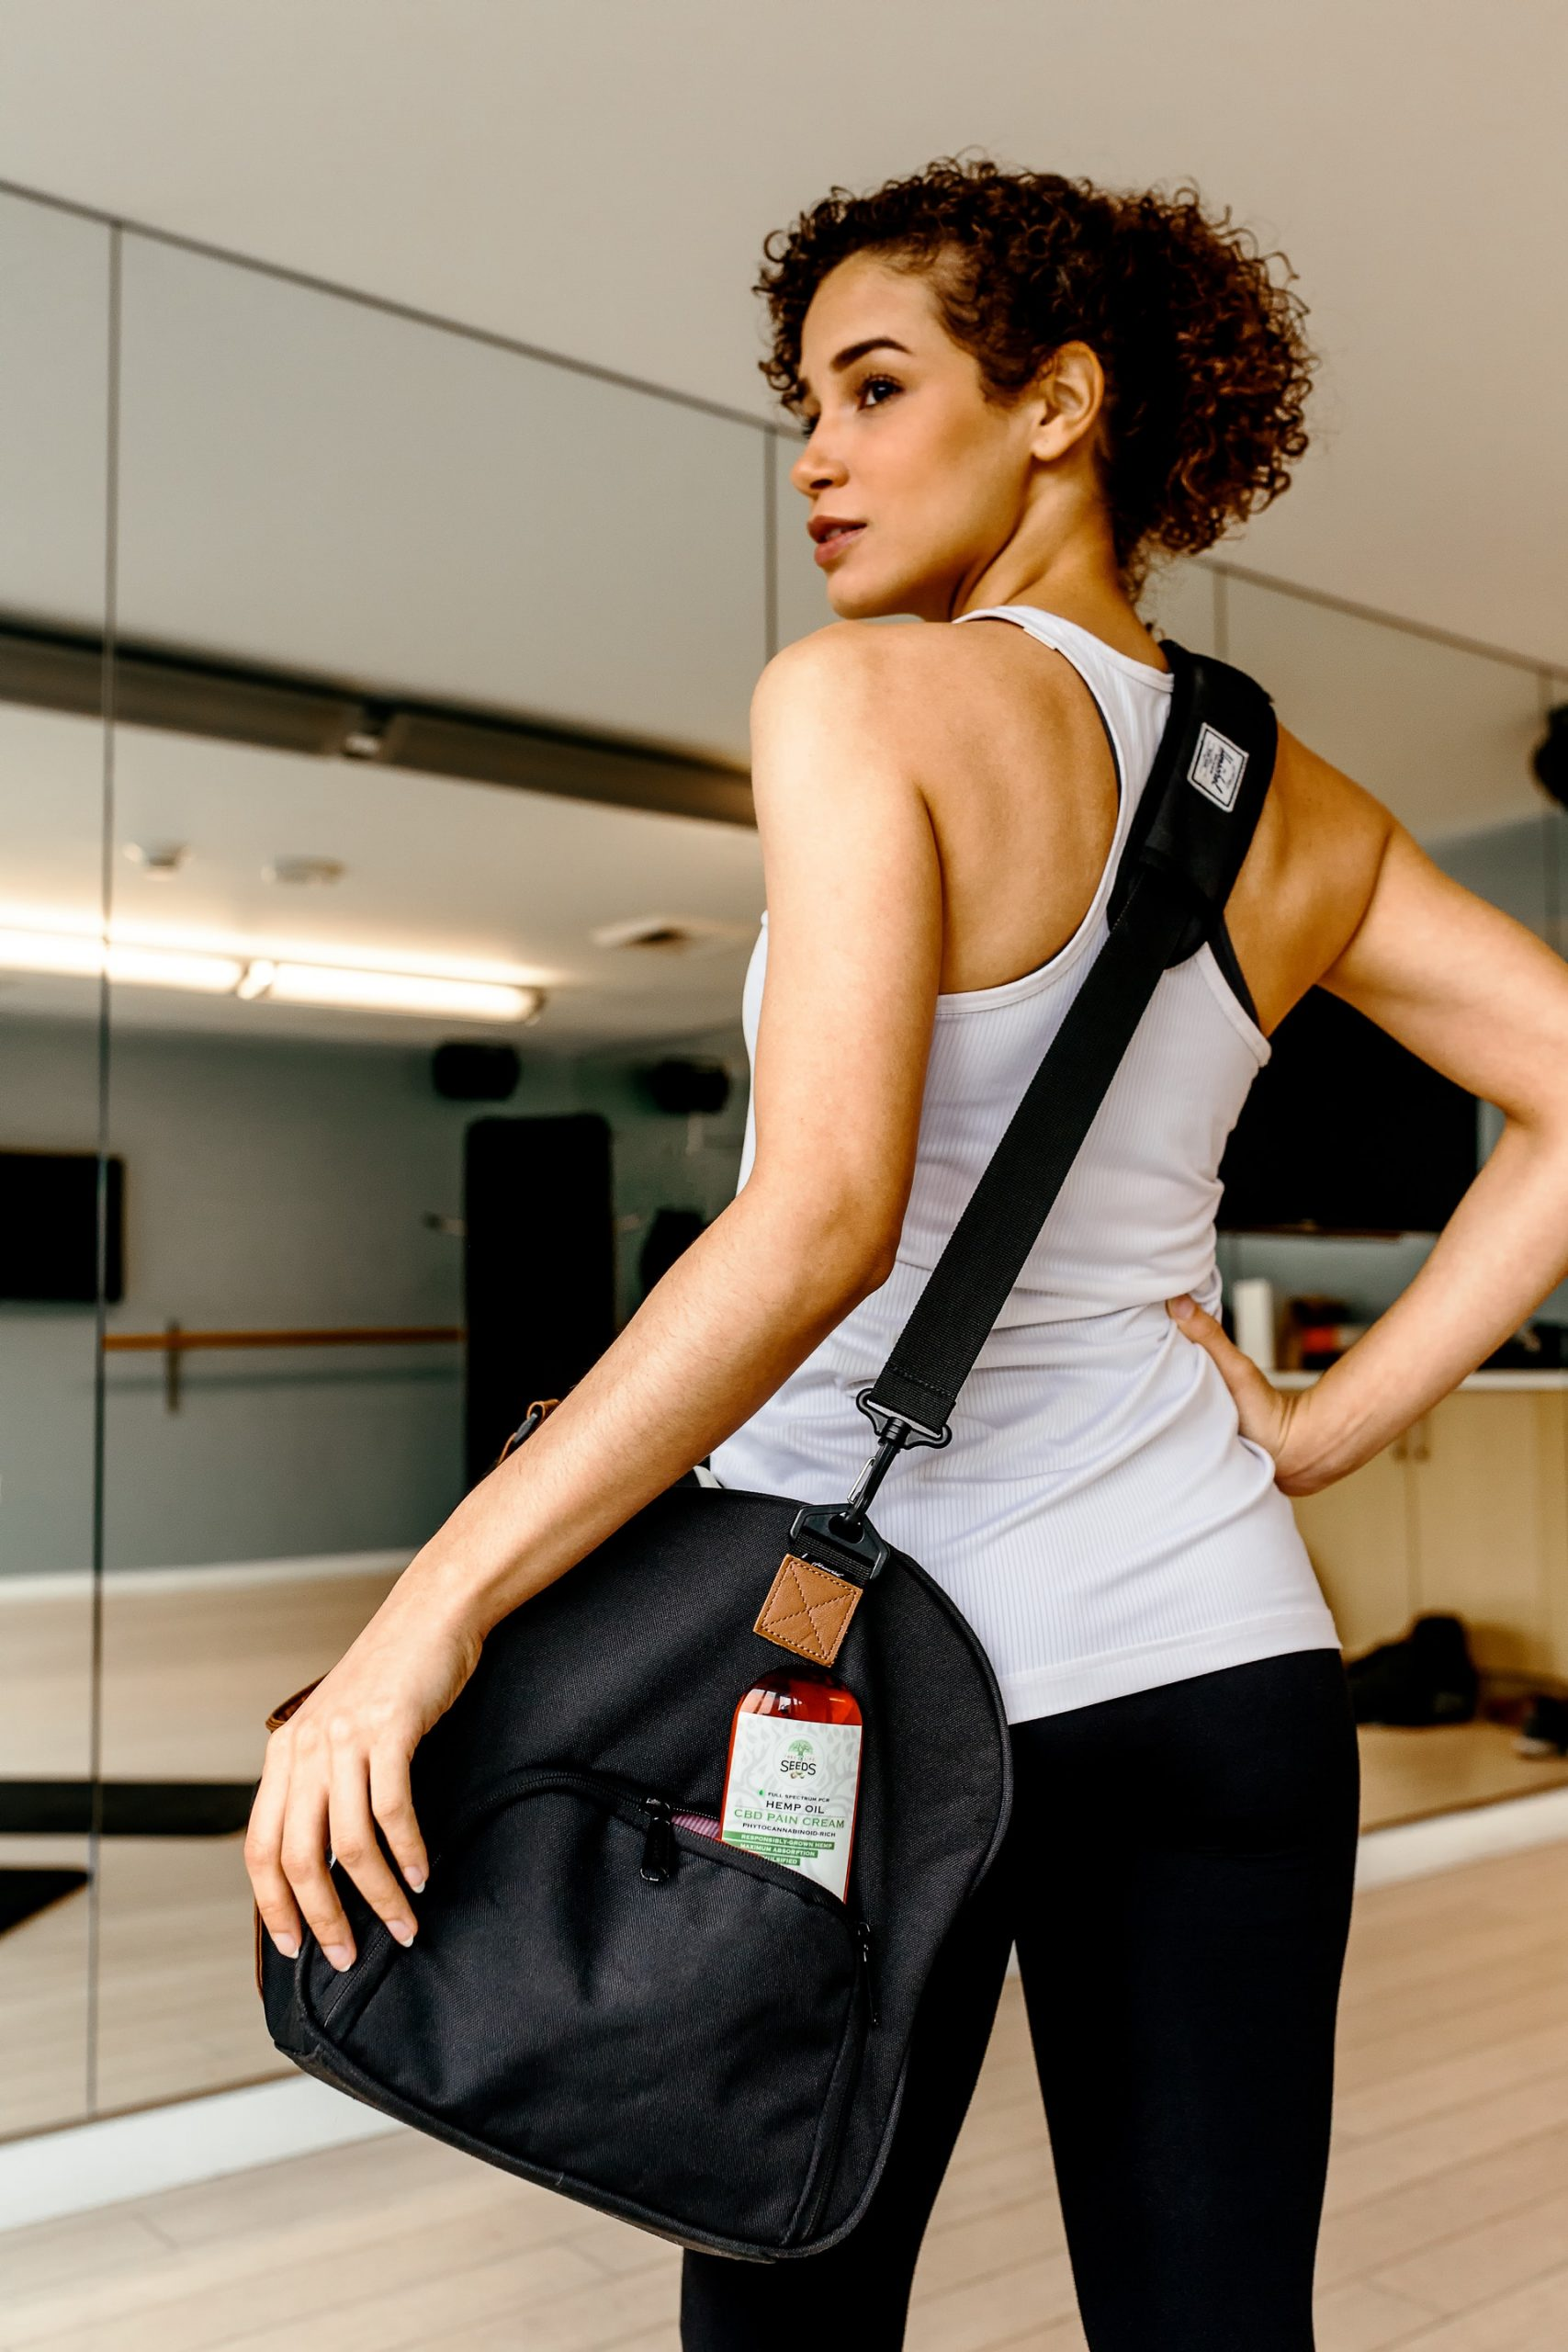 A woman in a gym with a gym bag.